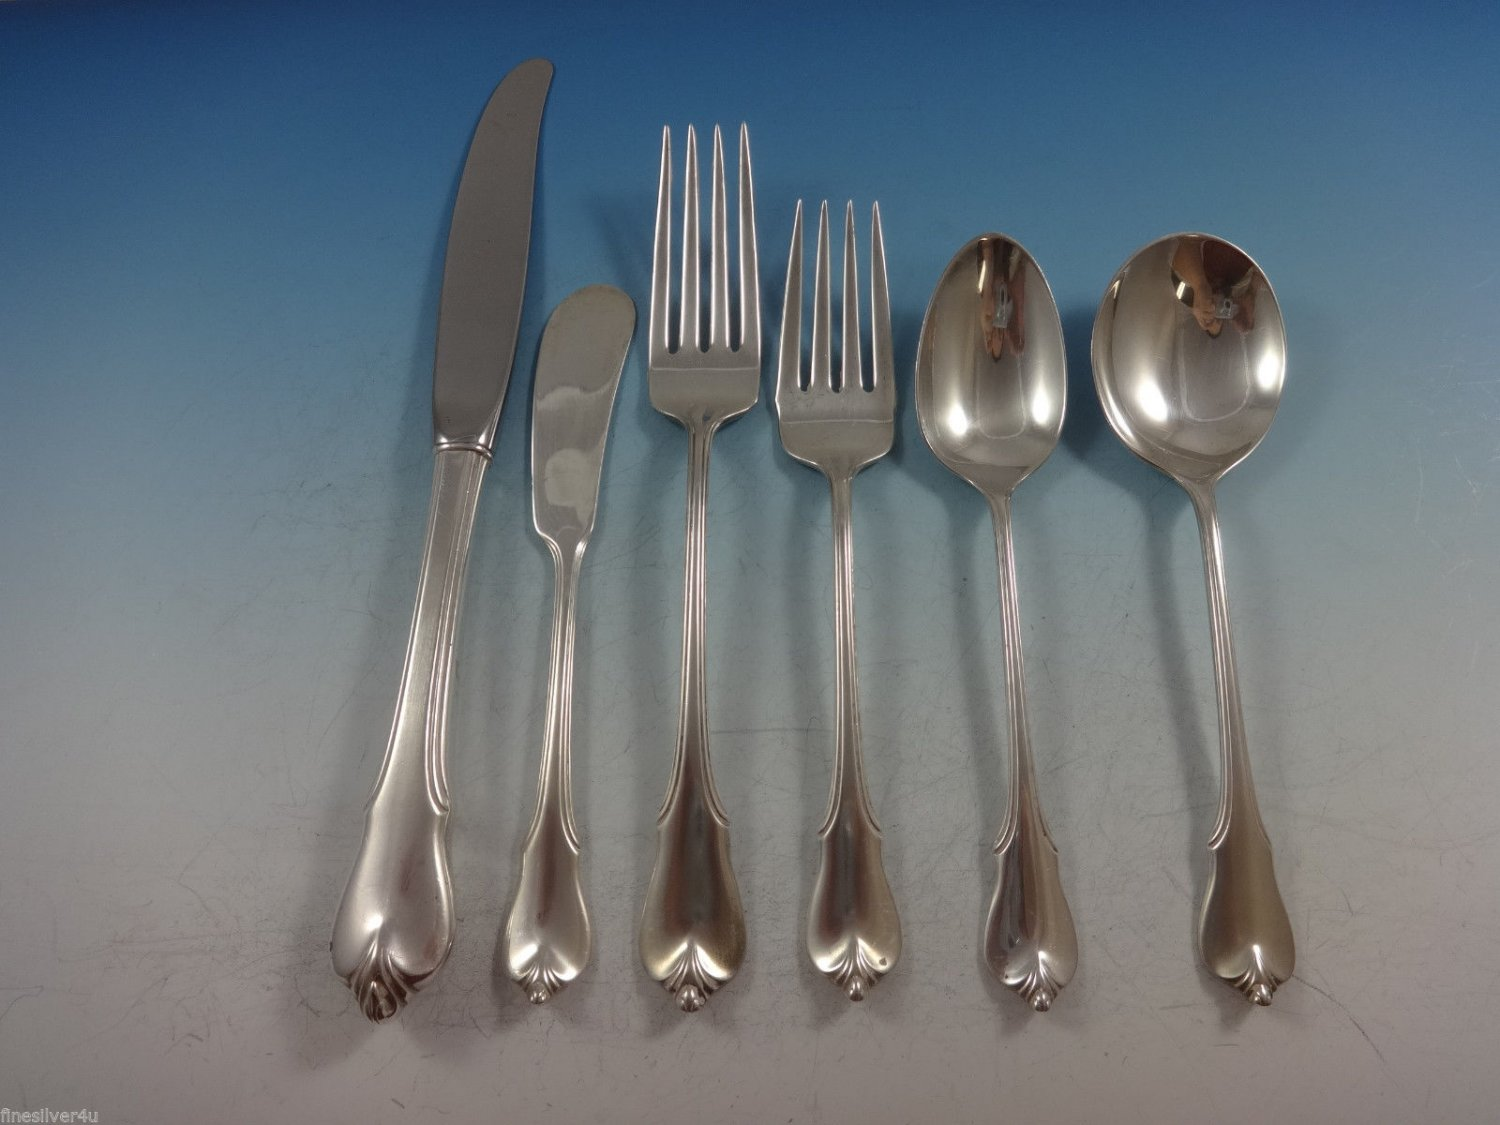 Grand Colonial by Wallace Sterling Silver Flatware Set For 8 Service 55 Pieces